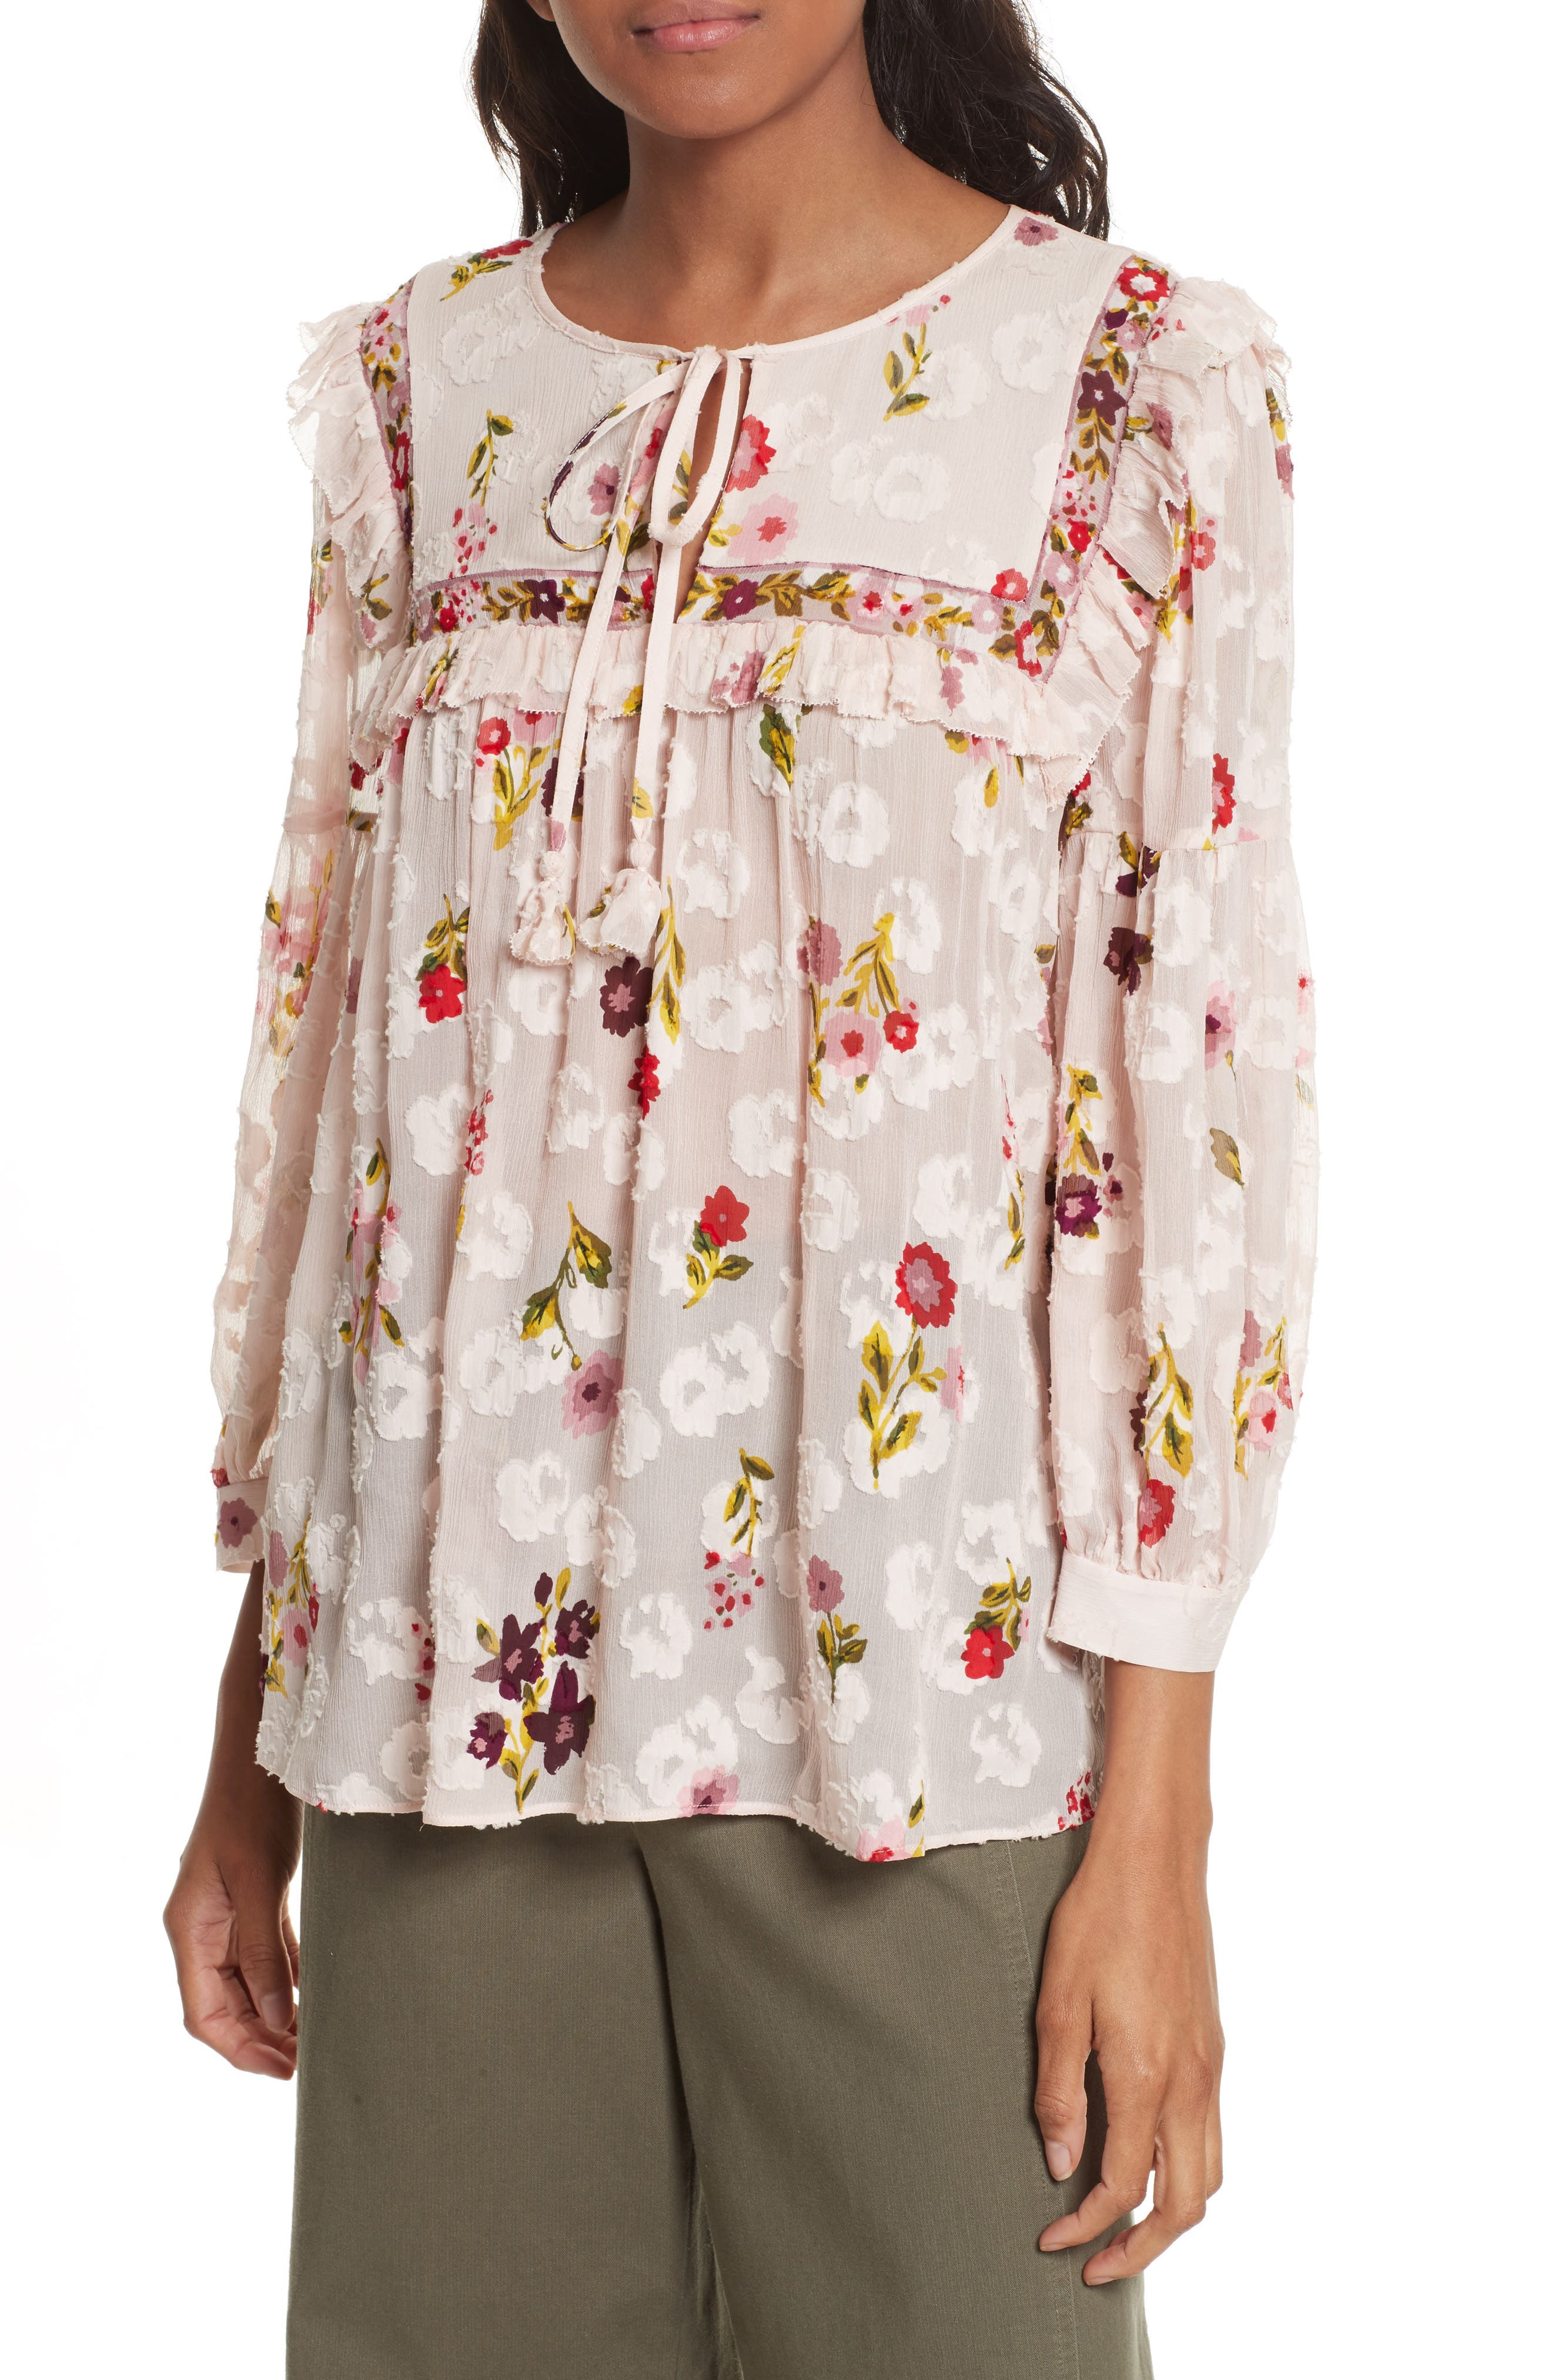 KATE SPADE NEW YORK in bloom chiffon top